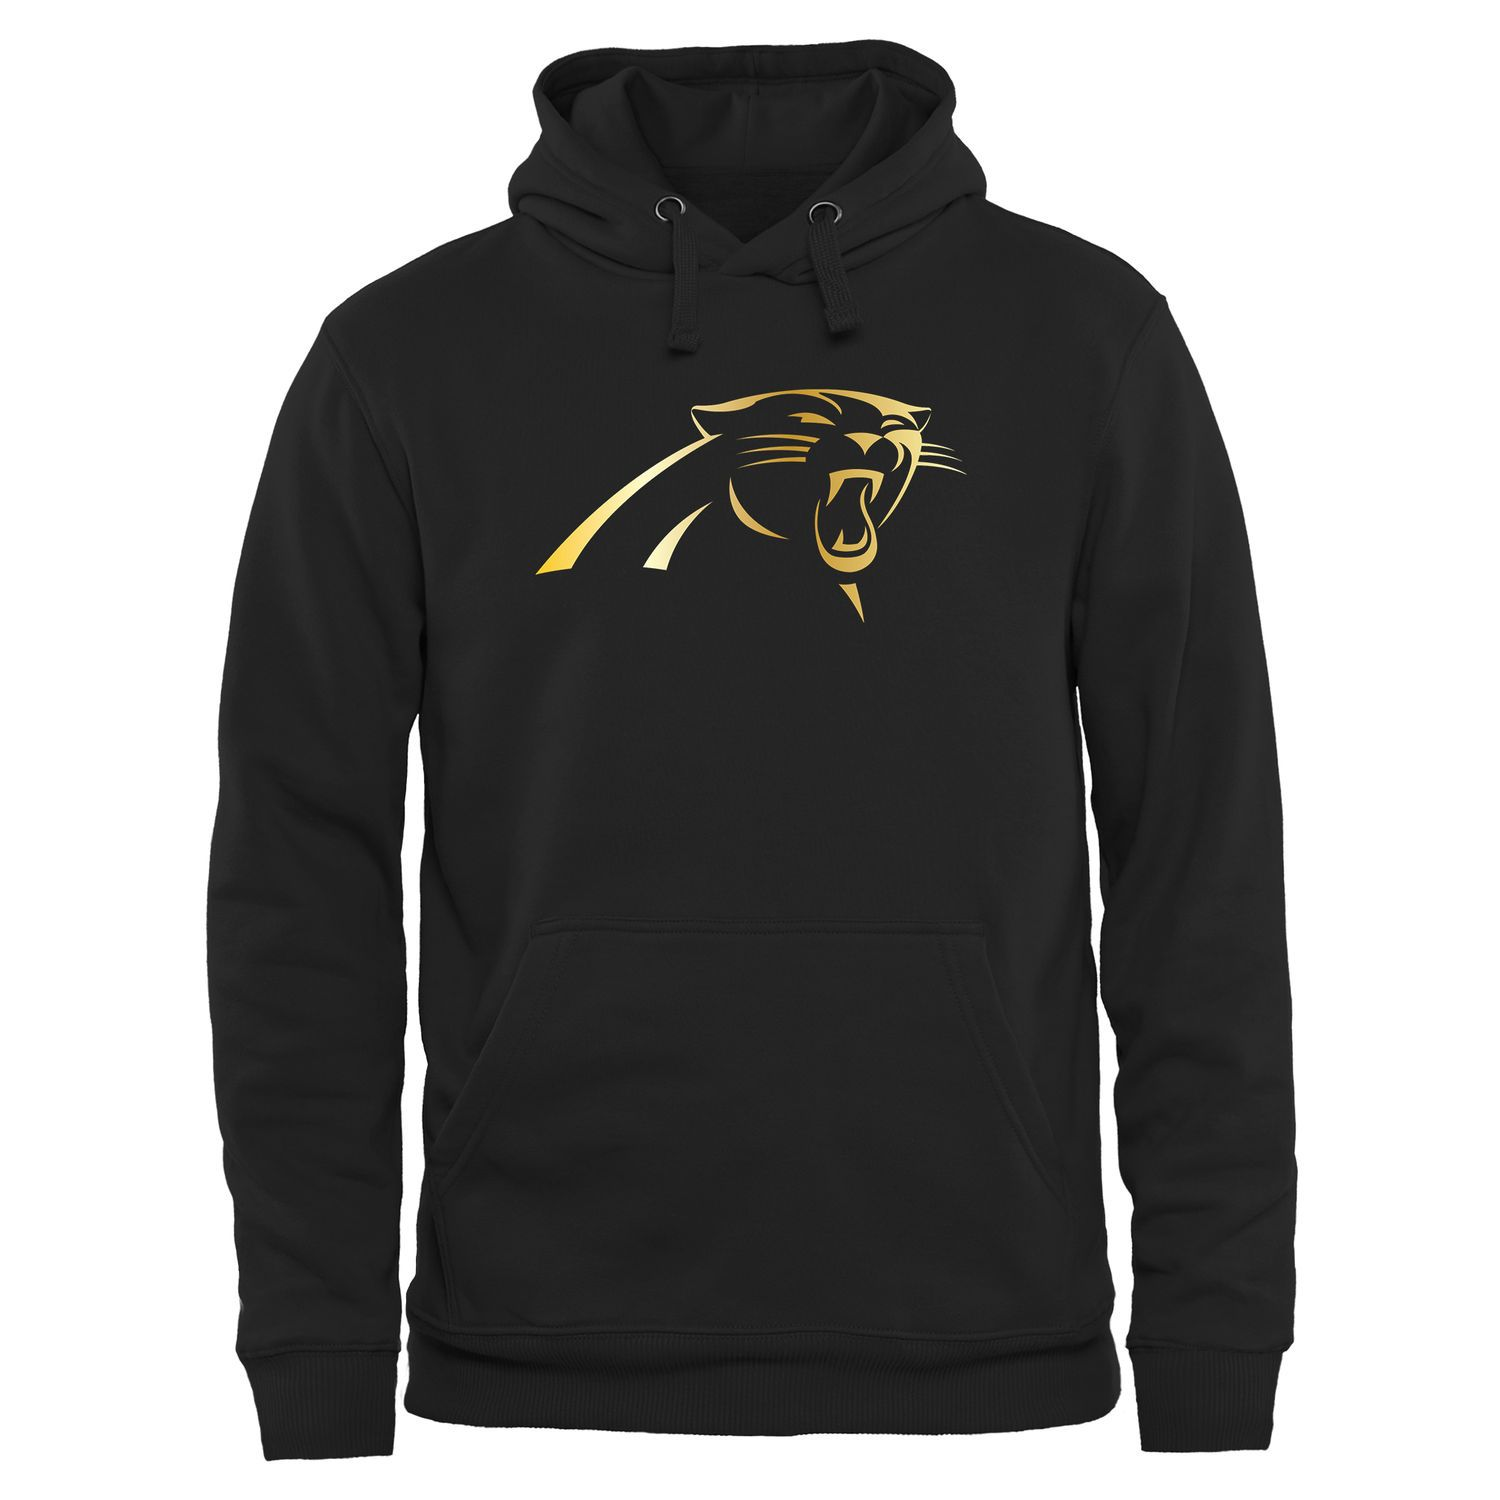 quality design 0b5b0 1f73d Carolina Panthers Pro Line Black Gold Collection Pullover ...